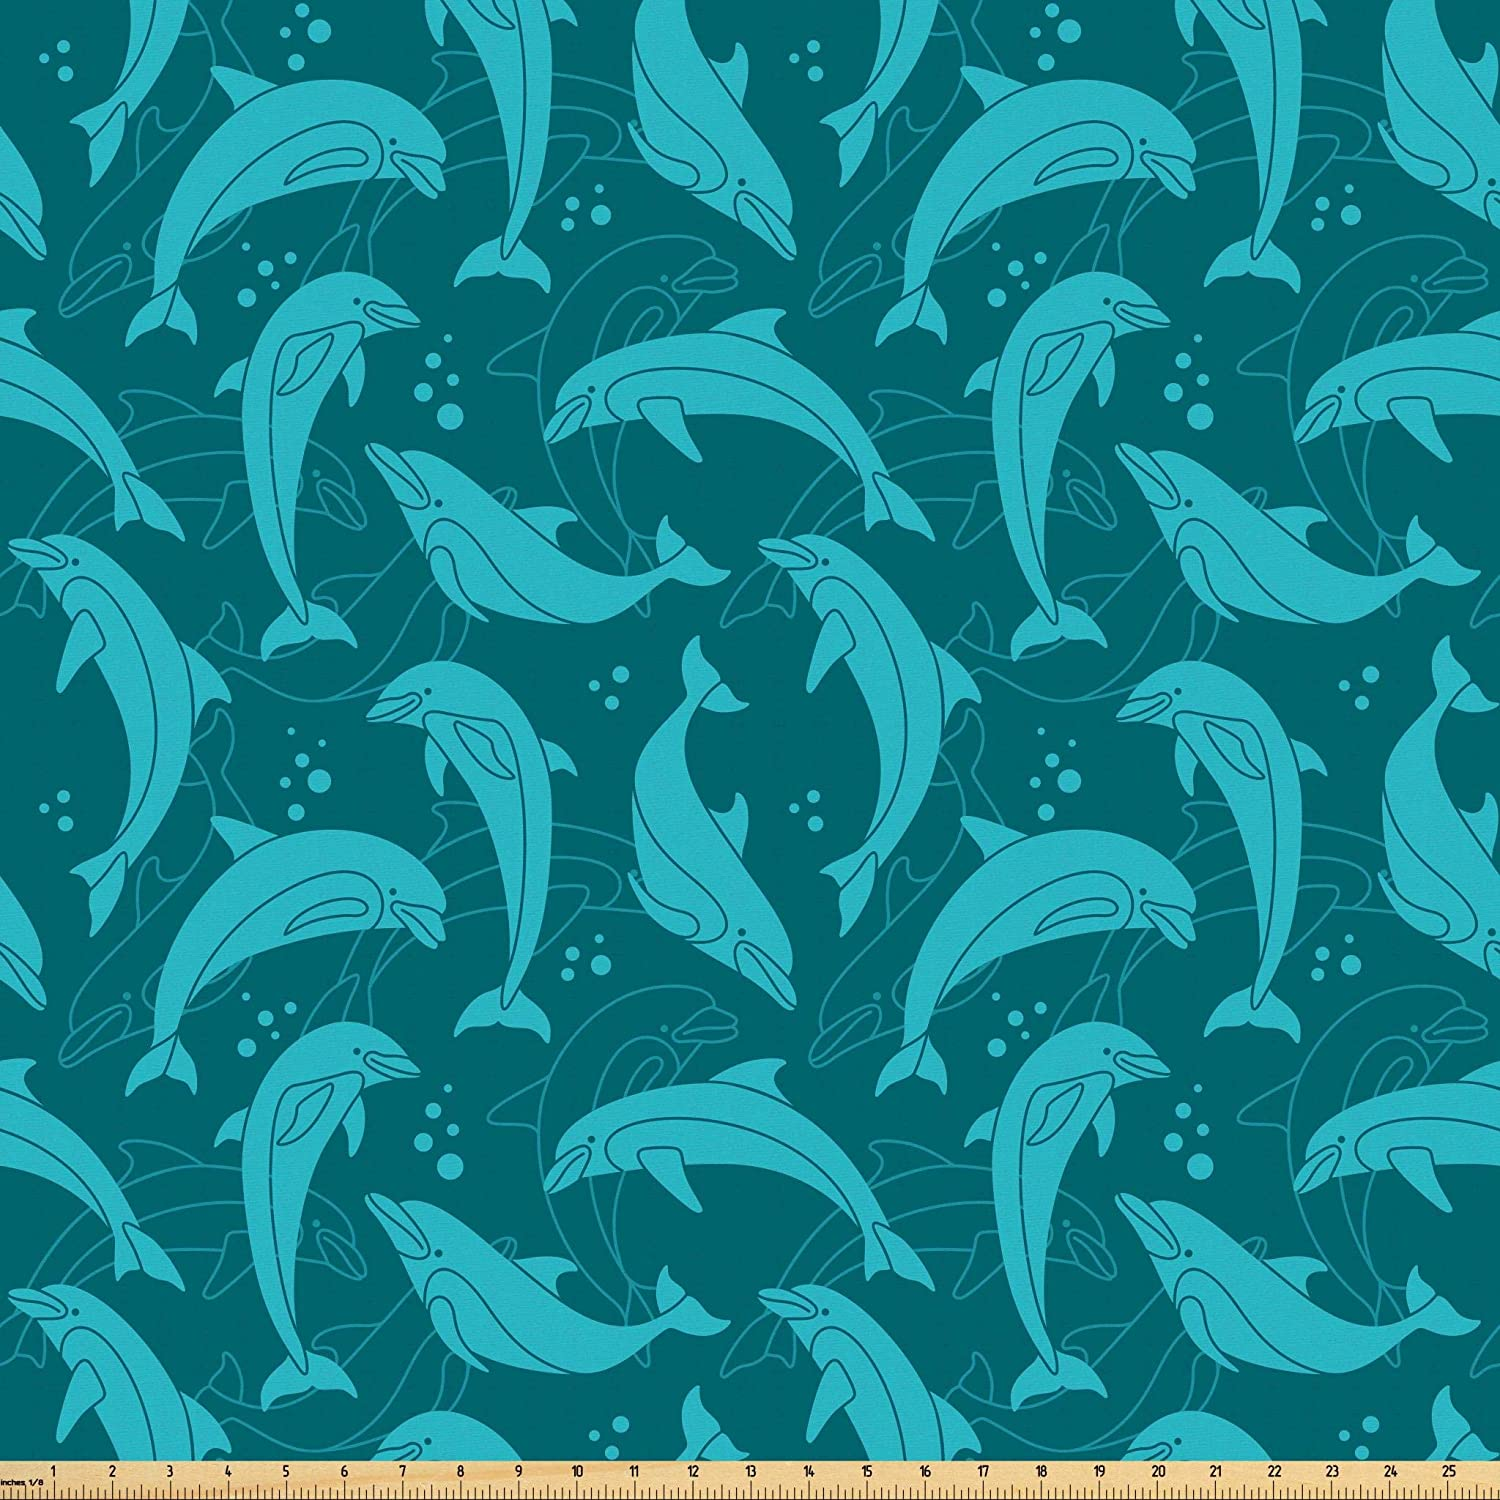 Lunarable Dolphin Fabric by The Yard, Cartoon Style Dolphins in Contrast Swimming in Deep Blue Water in Disorder, Microfiber Fabric for Arts and Crafts Textiles & Decor, 1 Yard, Blue Teal